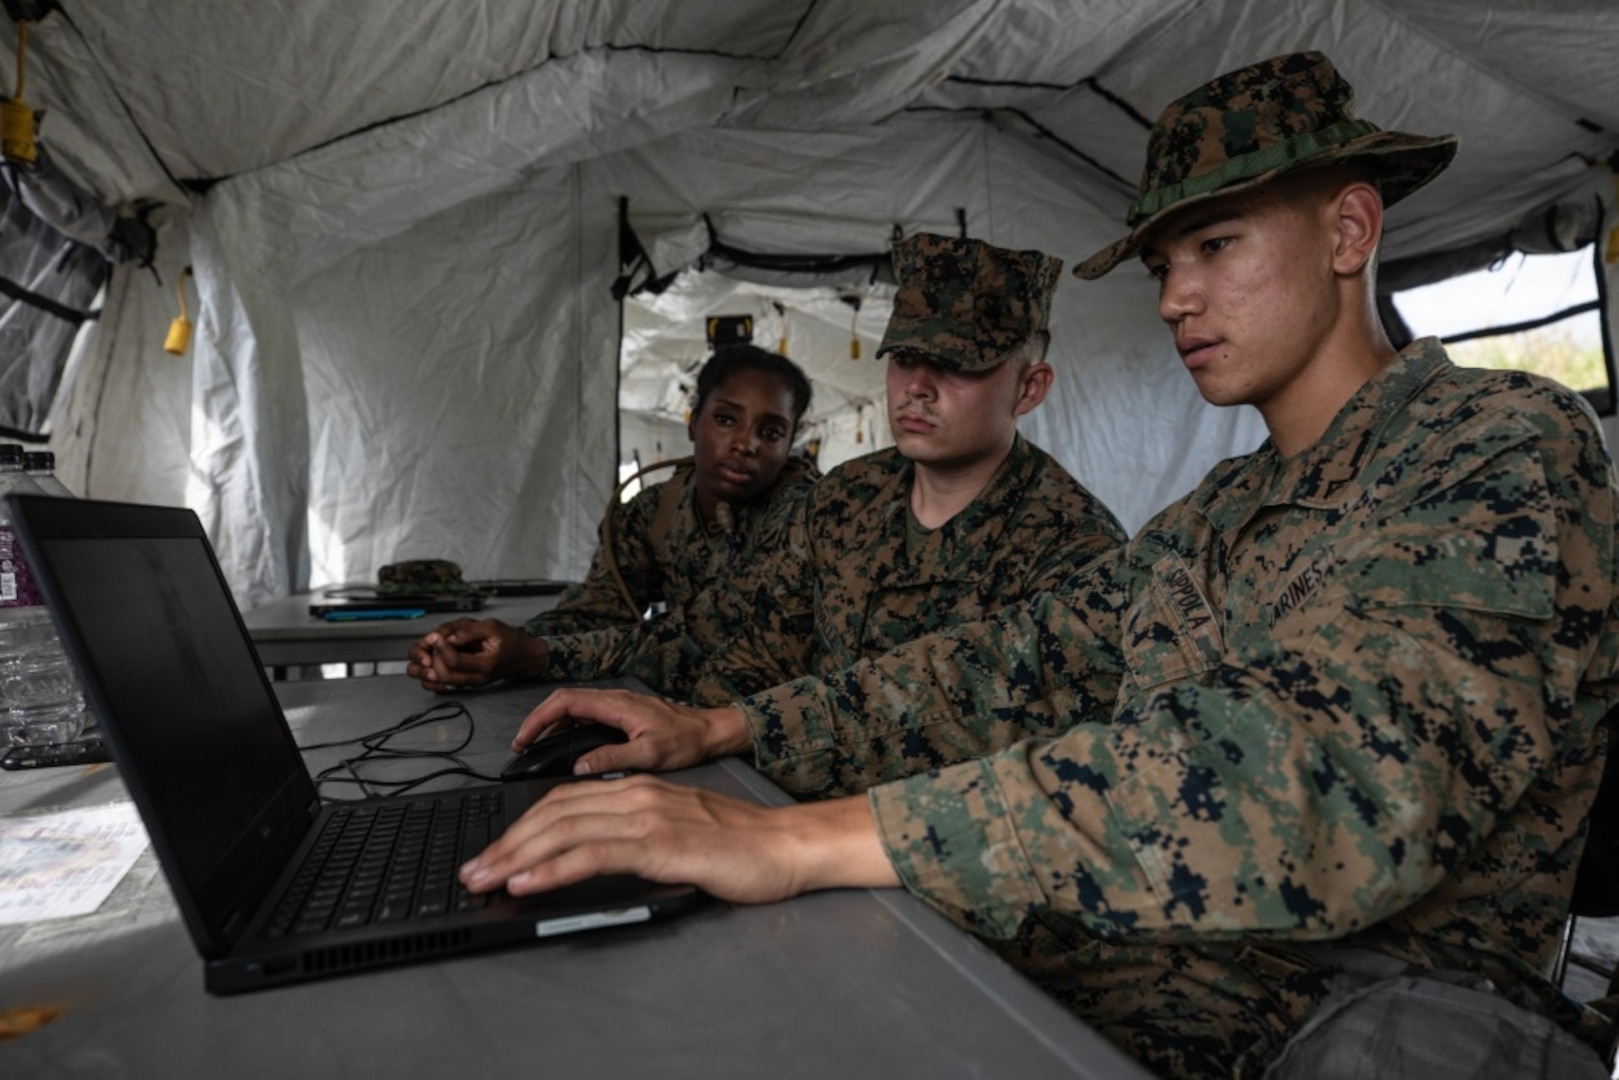 U.S. Marine Corps Lance Cpl. Kinyetta Alfred, left, Lance Cpl. Elijah Ovalle, center, and Lance Cpl. Serik Sippola prepare to ship gear during the 3rd Supply Battalion Marine Corps Combat Readiness Evaluation on Camp Hansen